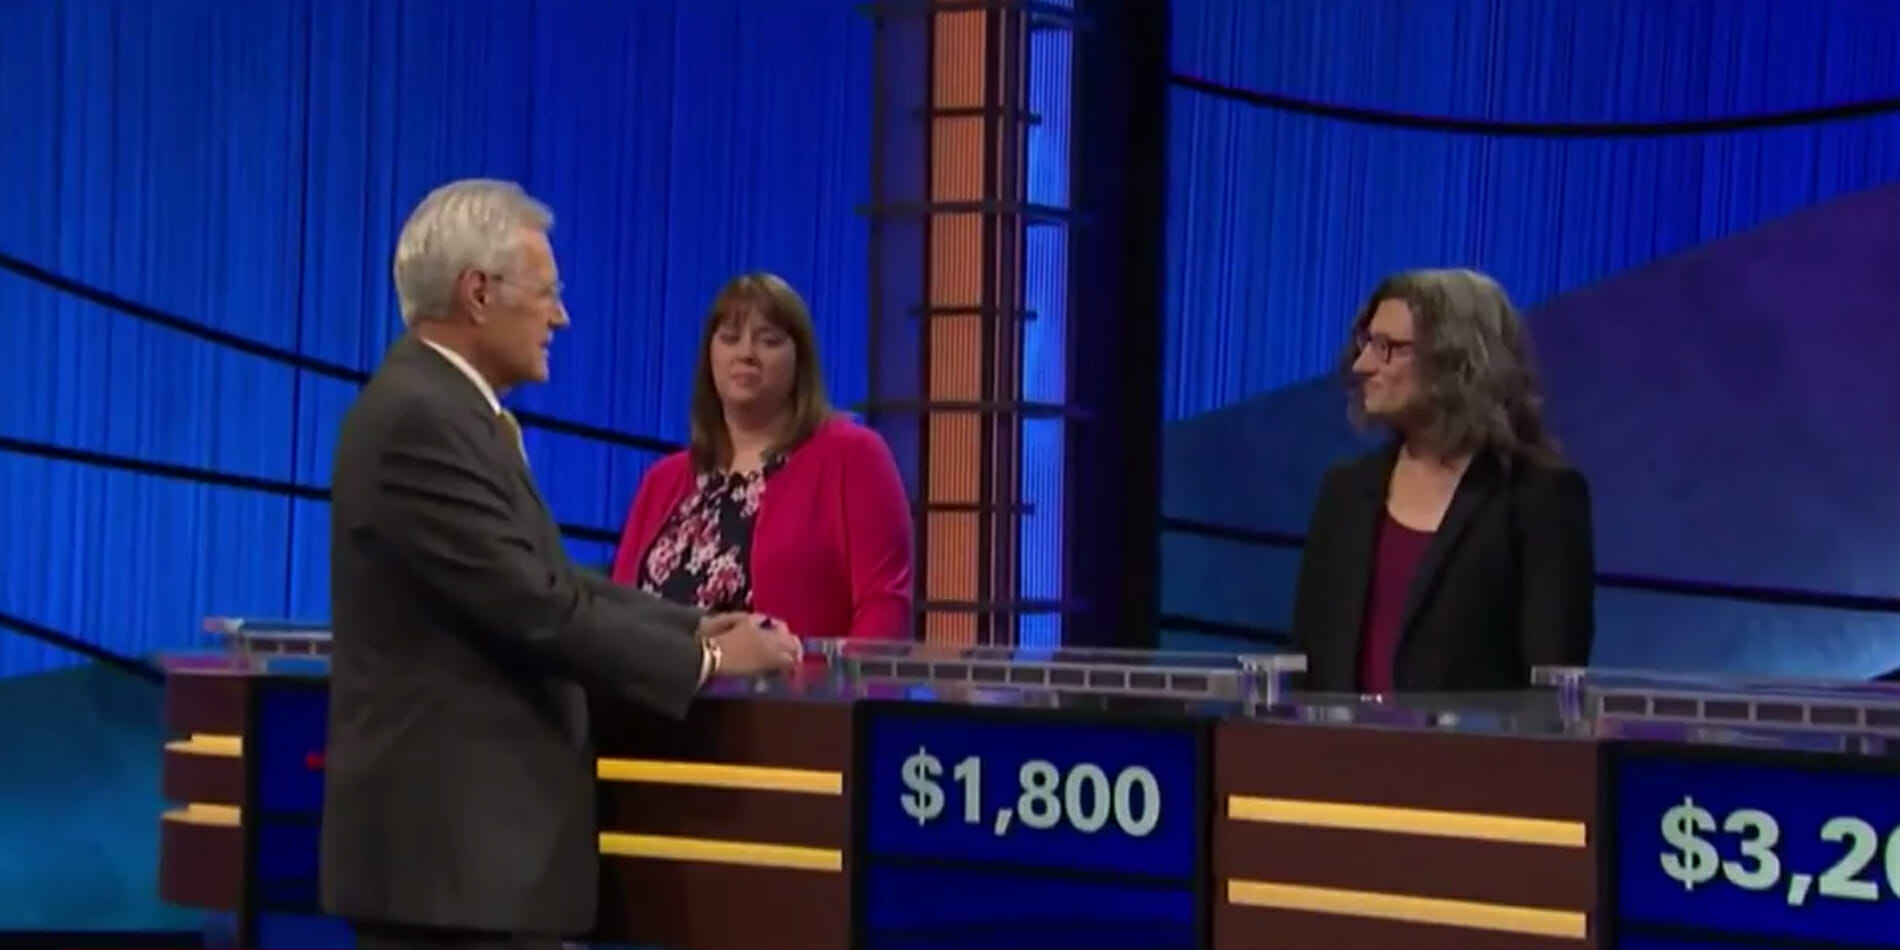 Alex Trebek is under fire on Twitter for making a sexist comment to a 'Jeopardy!' contestant.